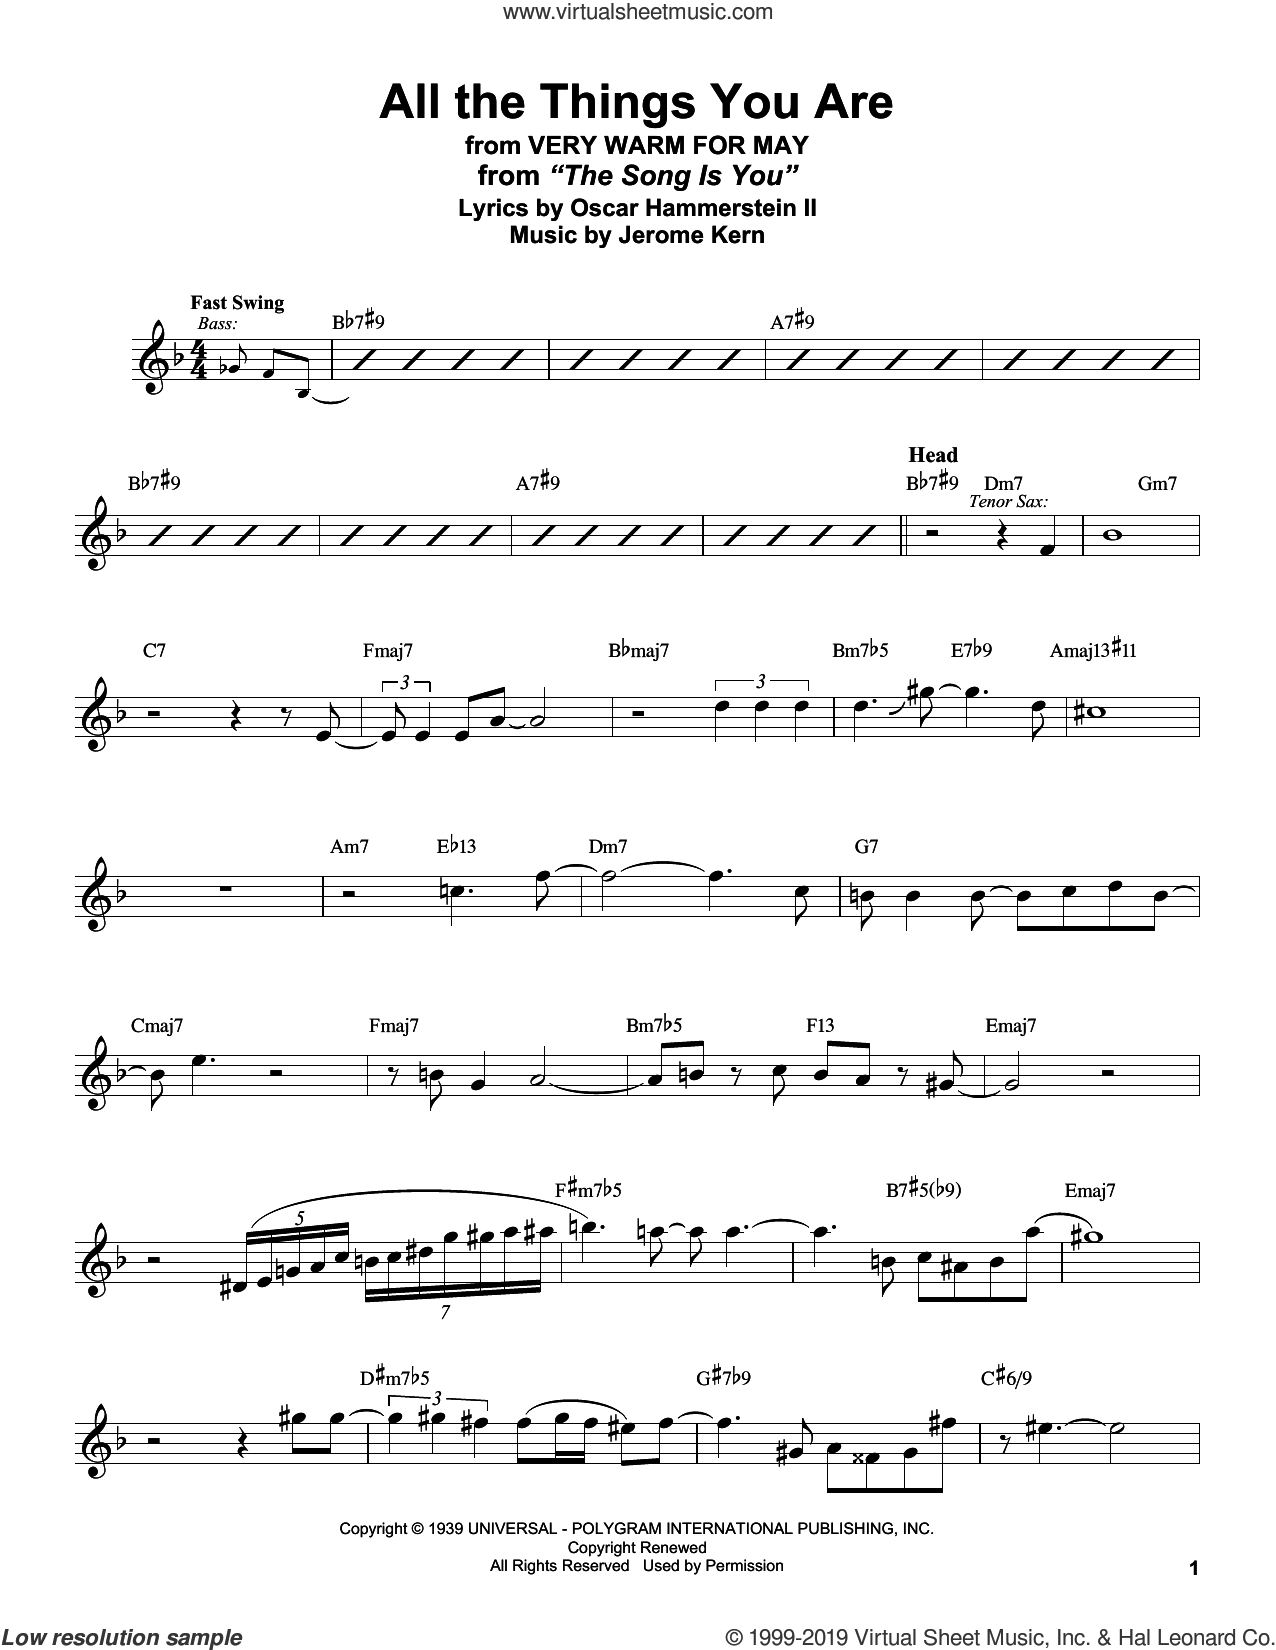 All The Things You Are (from Very Warm For May) sheet music for alto saxophone (transcription) by Stan Getz, Jerome Kern and Oscar II Hammerstein, intermediate skill level